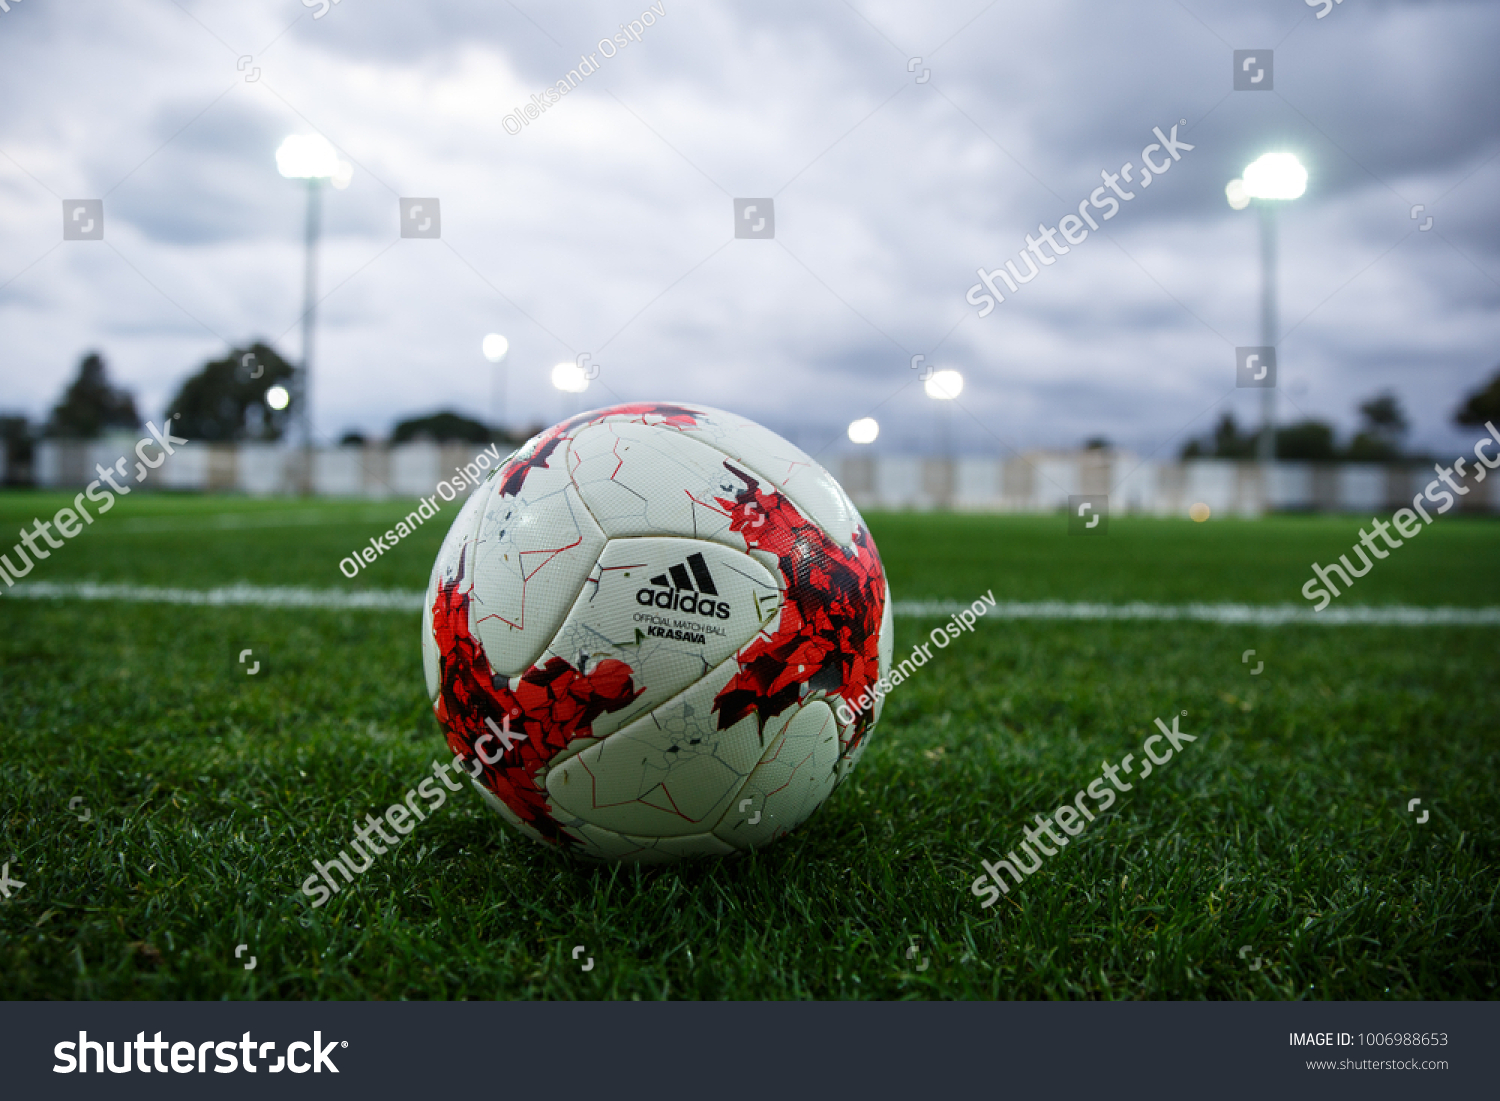 Best Europe World Cup 2018 - stock-photo-paris-europe-january-official-match-ball-of-the-fifa-world-cup-adidas-krasava-on-1006988653  Perfect Image Reference_119468 .jpg